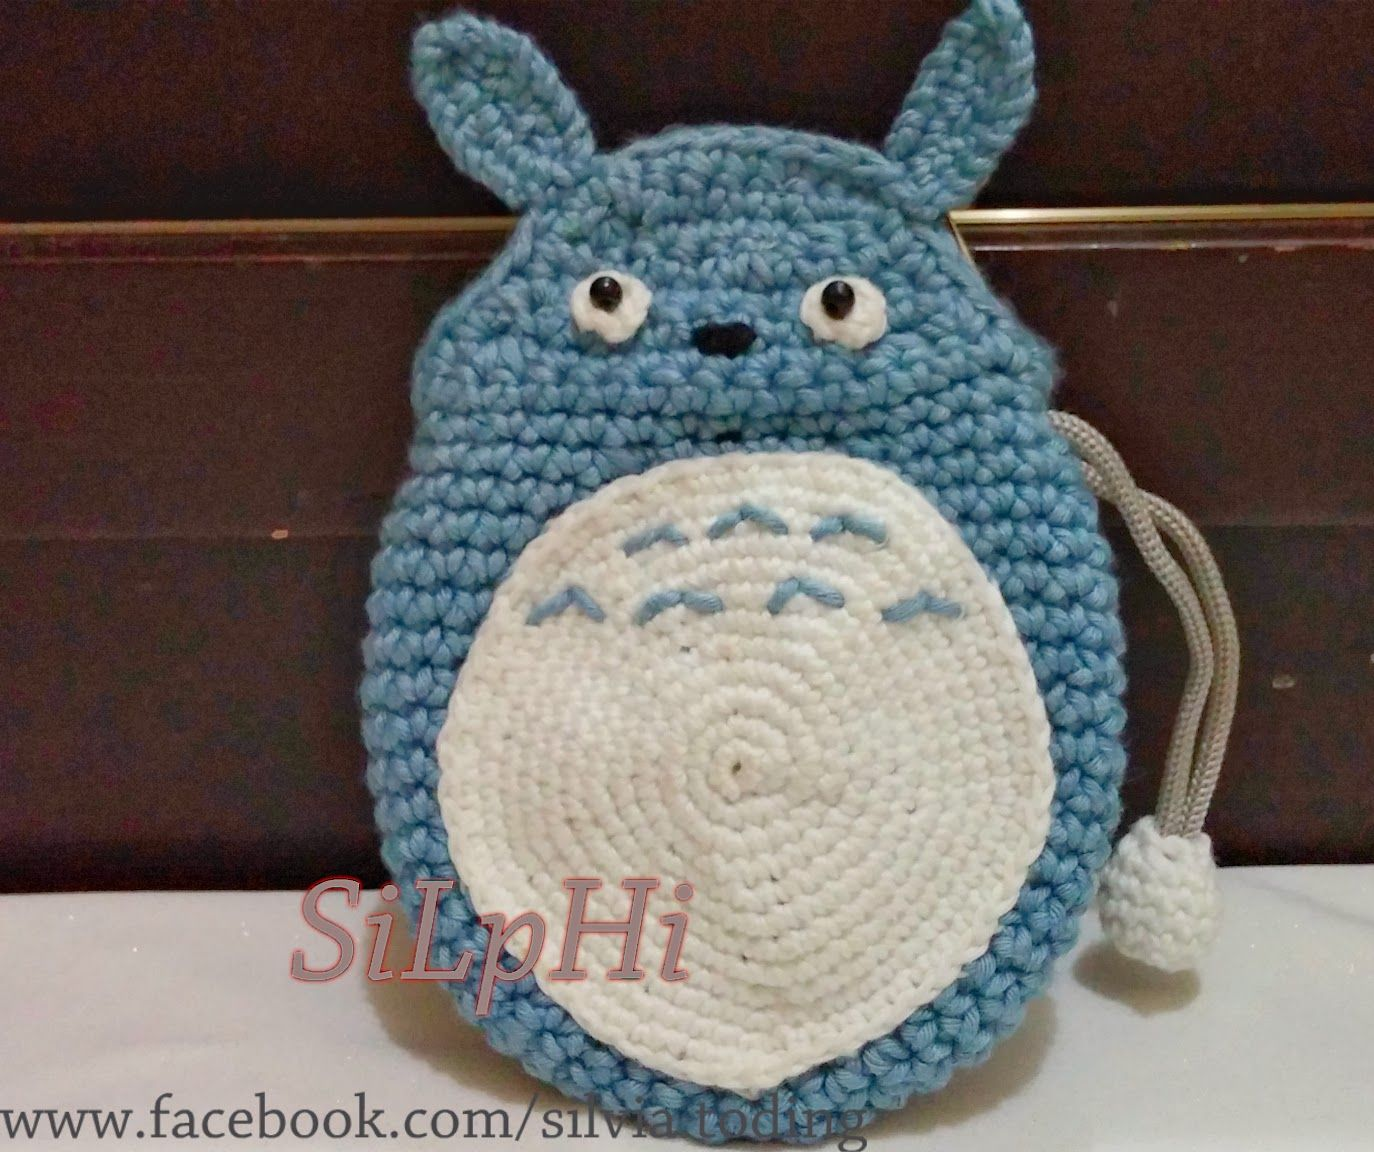 Tas Rajut Anak Burung Hantu Crochet Owl Bag For Girl Handmade